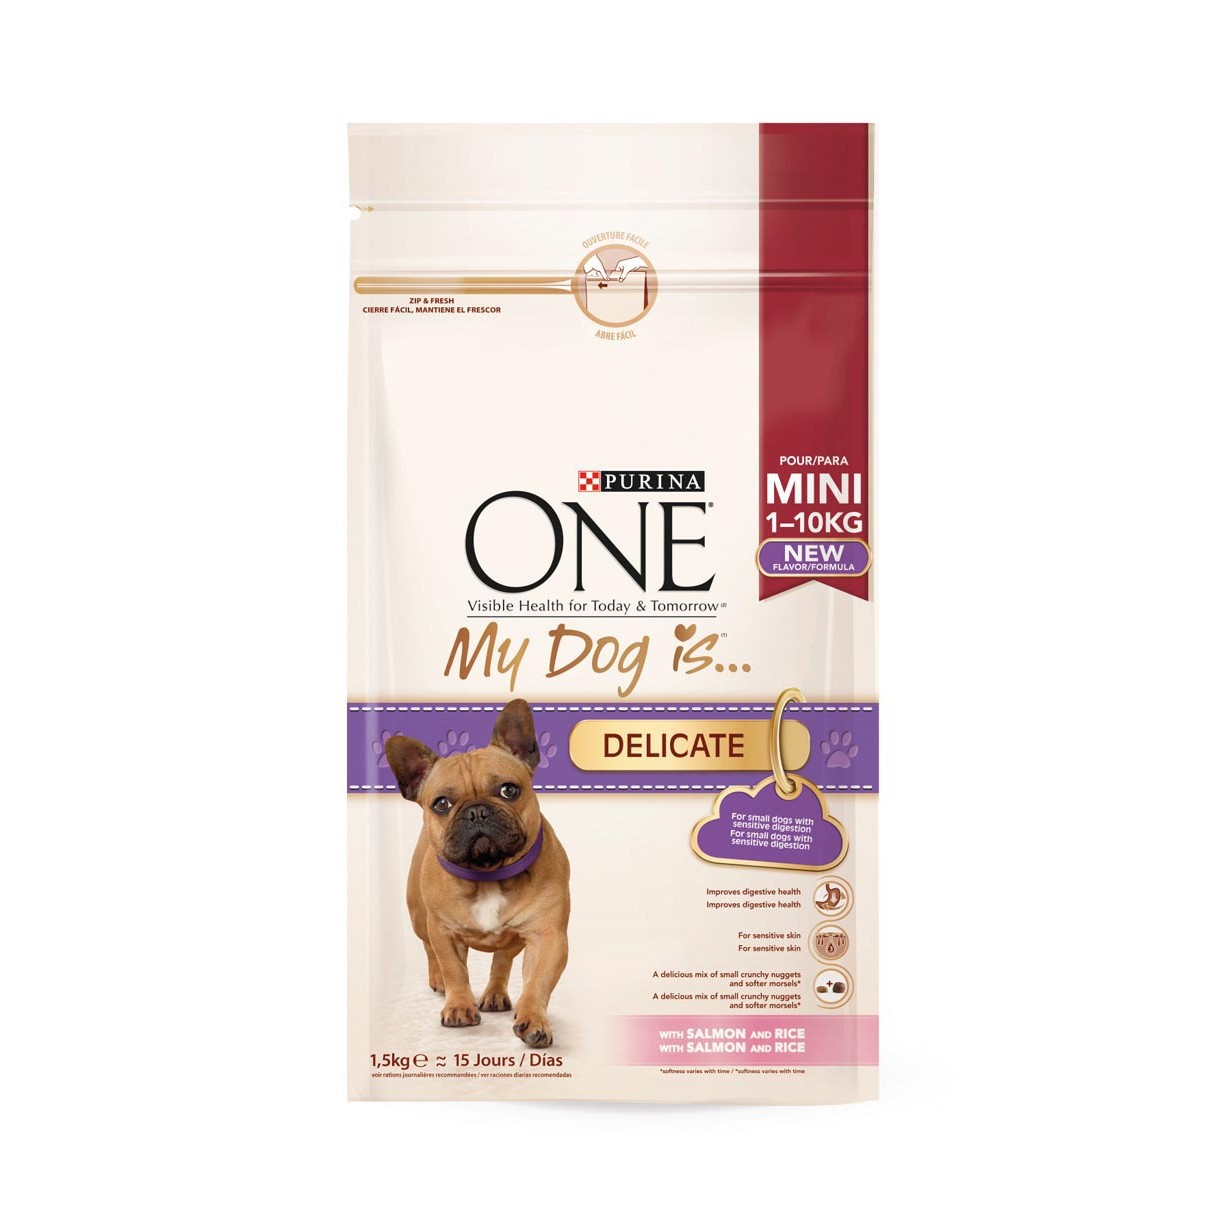 Purina One comida perro my dog is delicate salmon & arroz de 1,5kg.